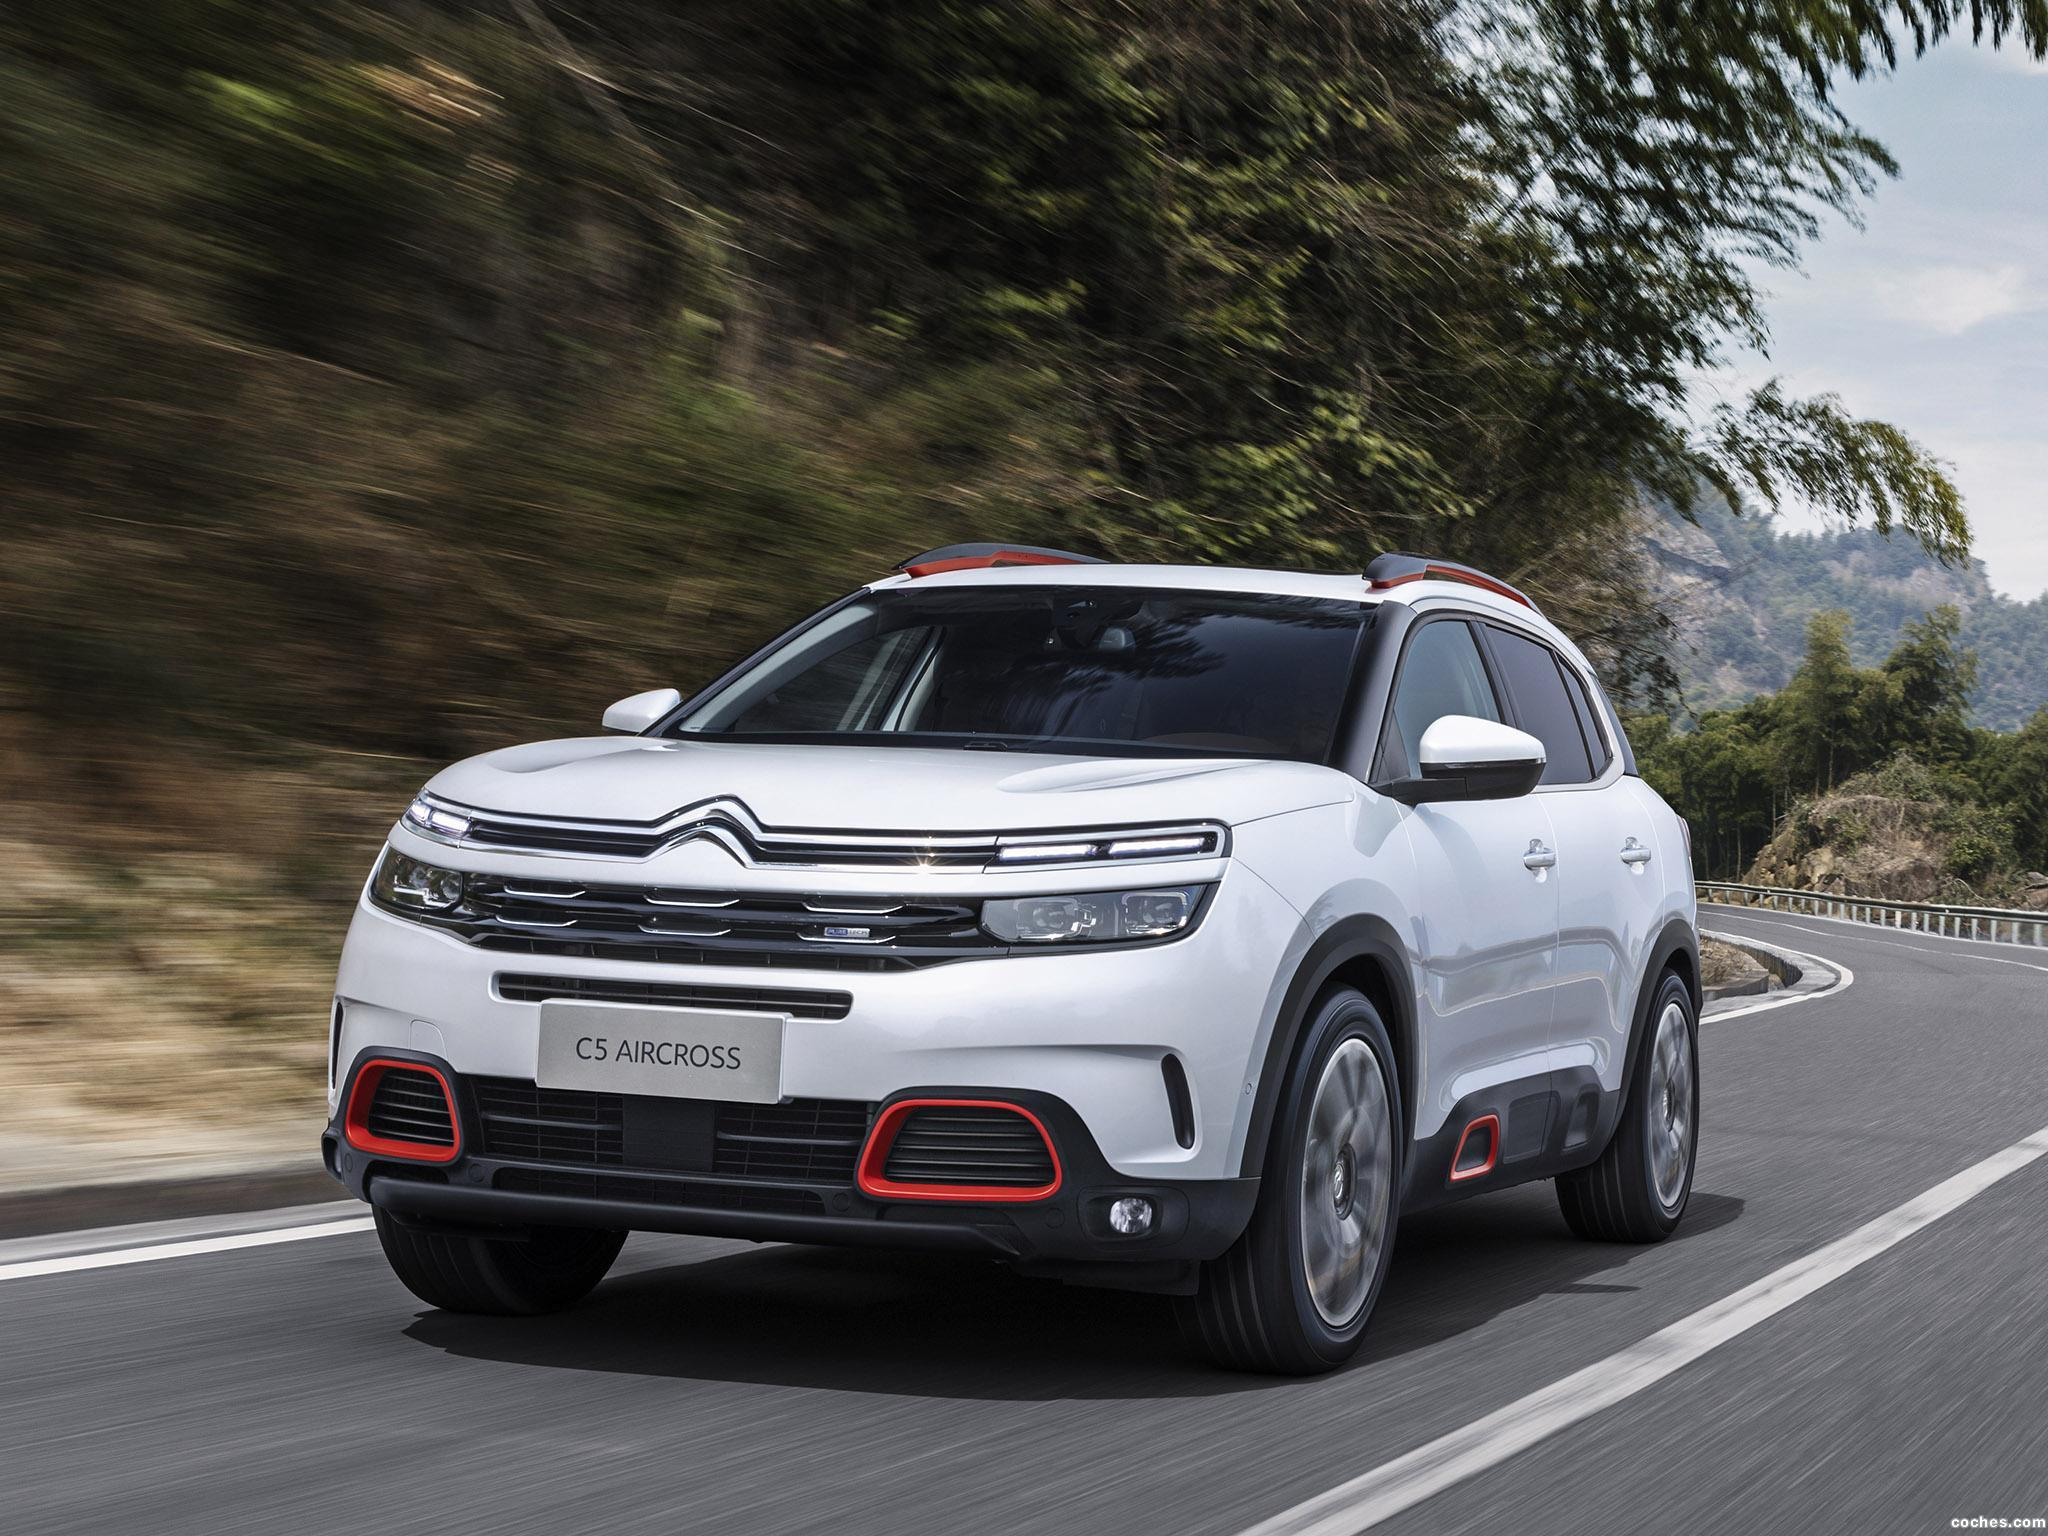 Foto 0 de Citroen C5 Aircross China 2017